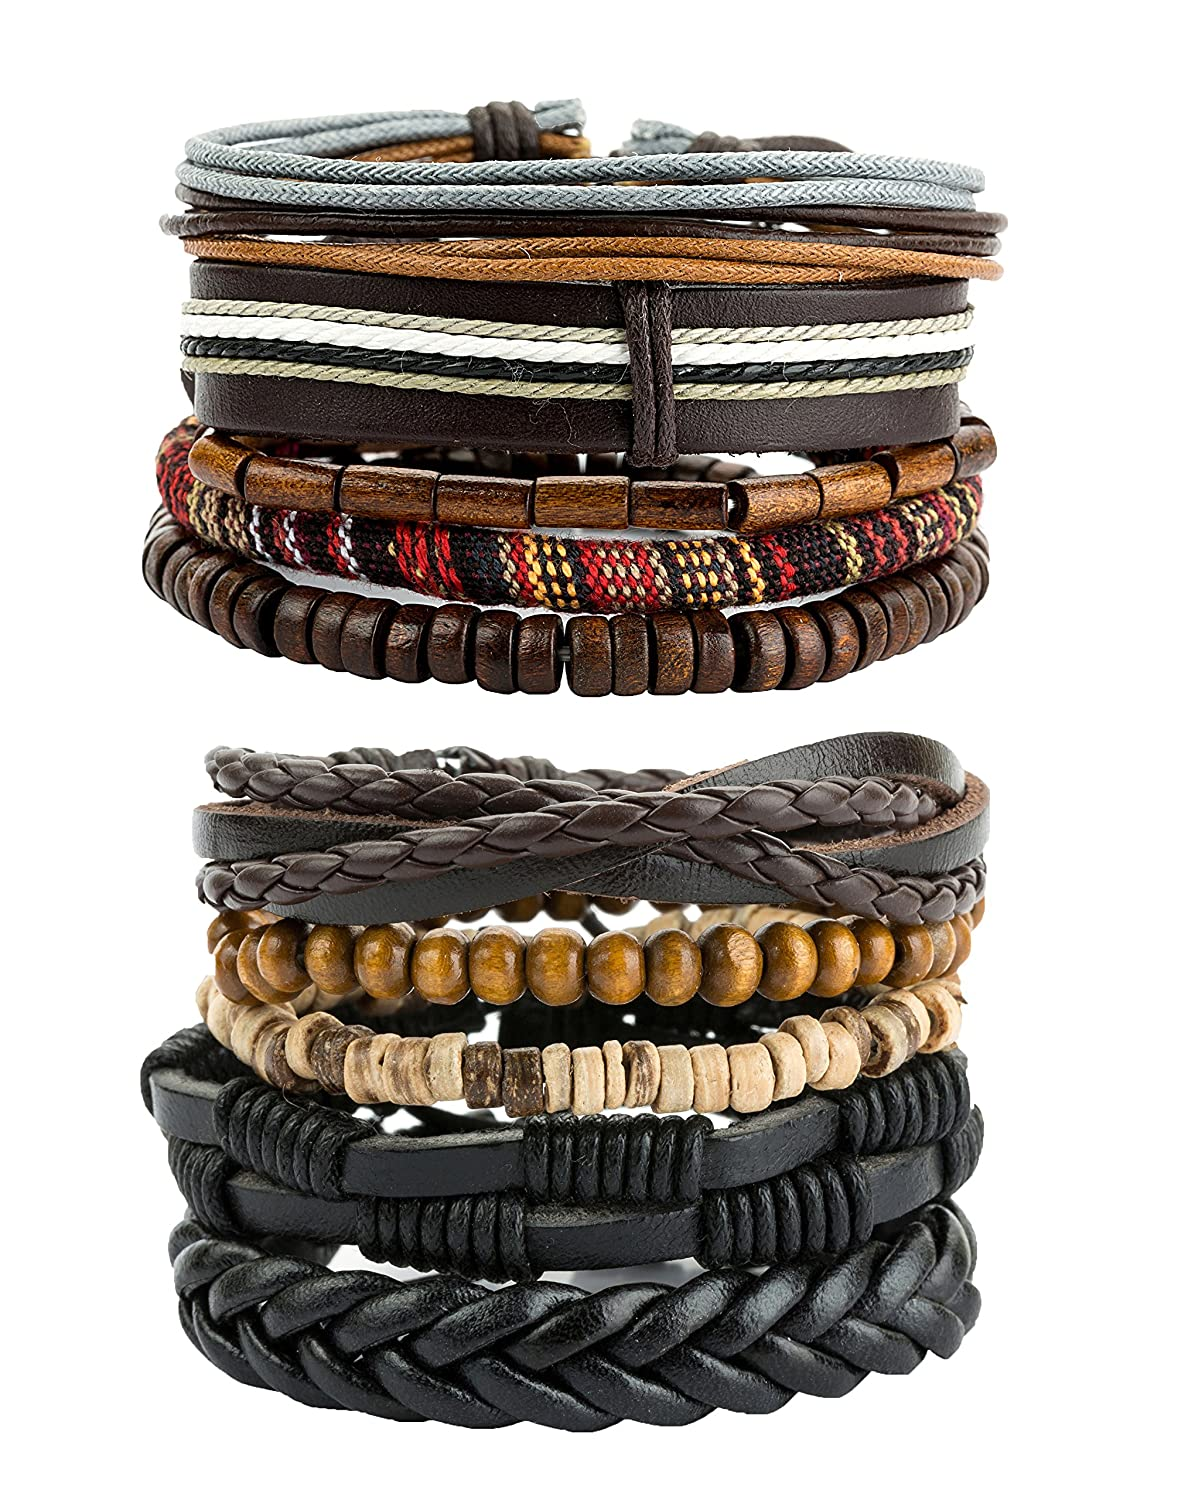 REVOLIA 10-15Pcs Mens Womens Leather Bracelets Wooden Beaded Bracelets Braided Cuff MSL09-10